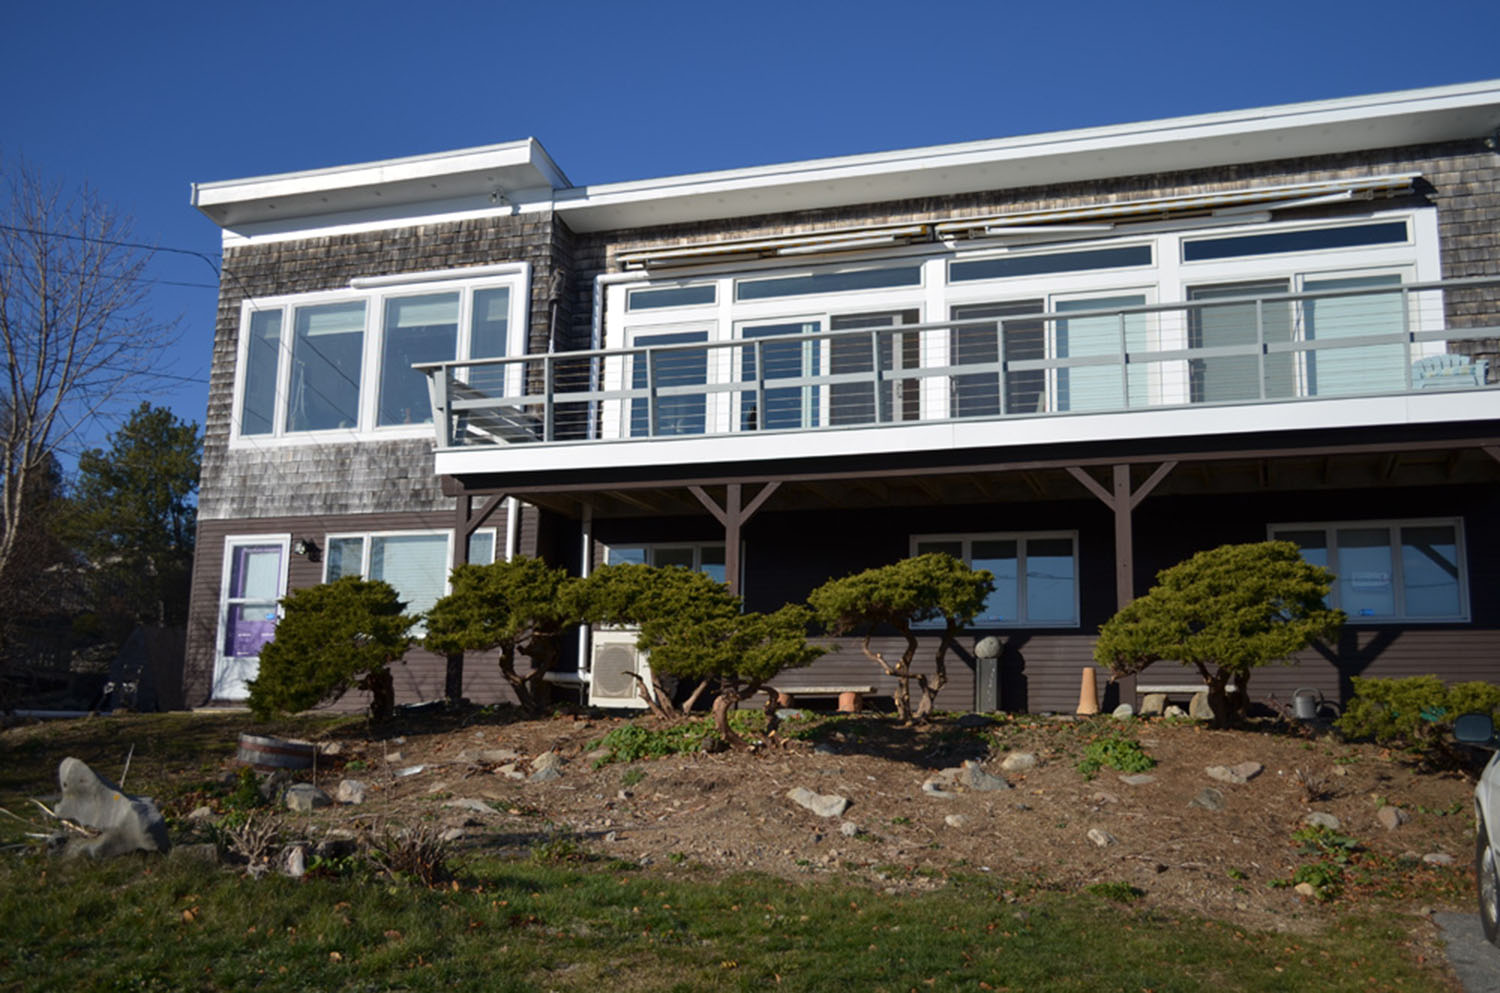 New Vacation Rental Properties for Your Best Cape Ann